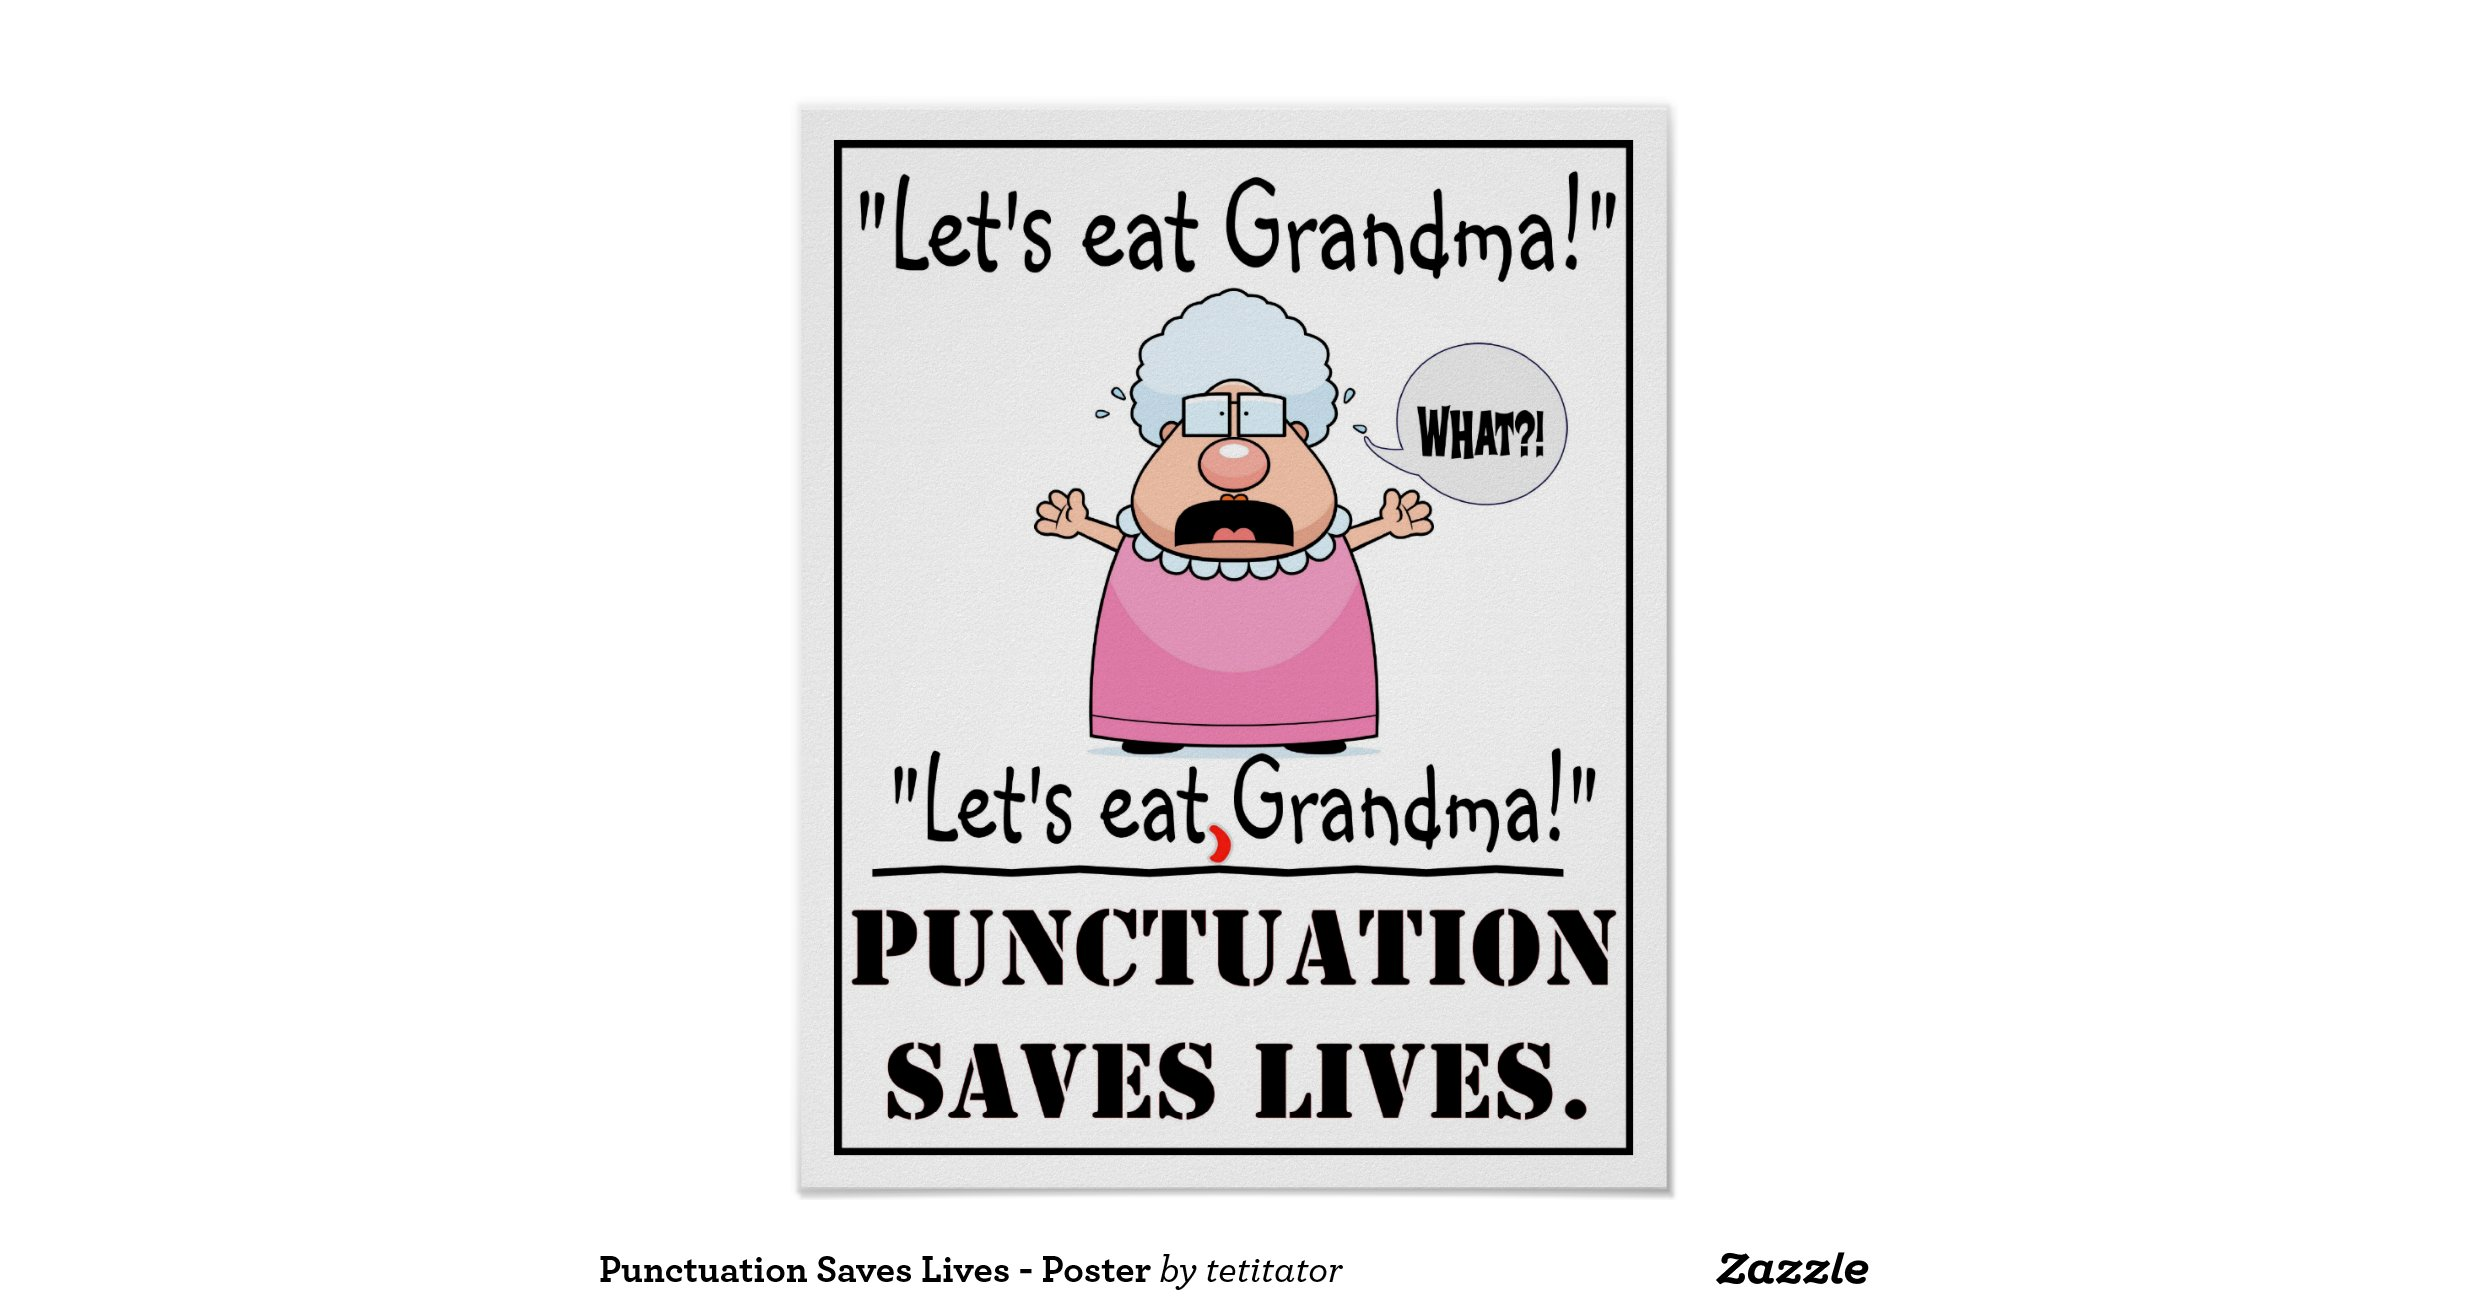 punctuation_saves_lives_poster ...